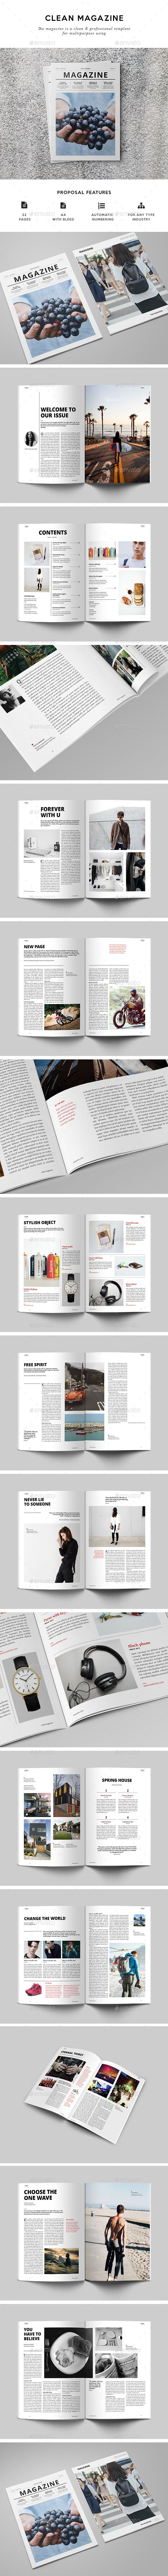 Clean Magazine Template | Layouts, Magazines and Magazine layouts